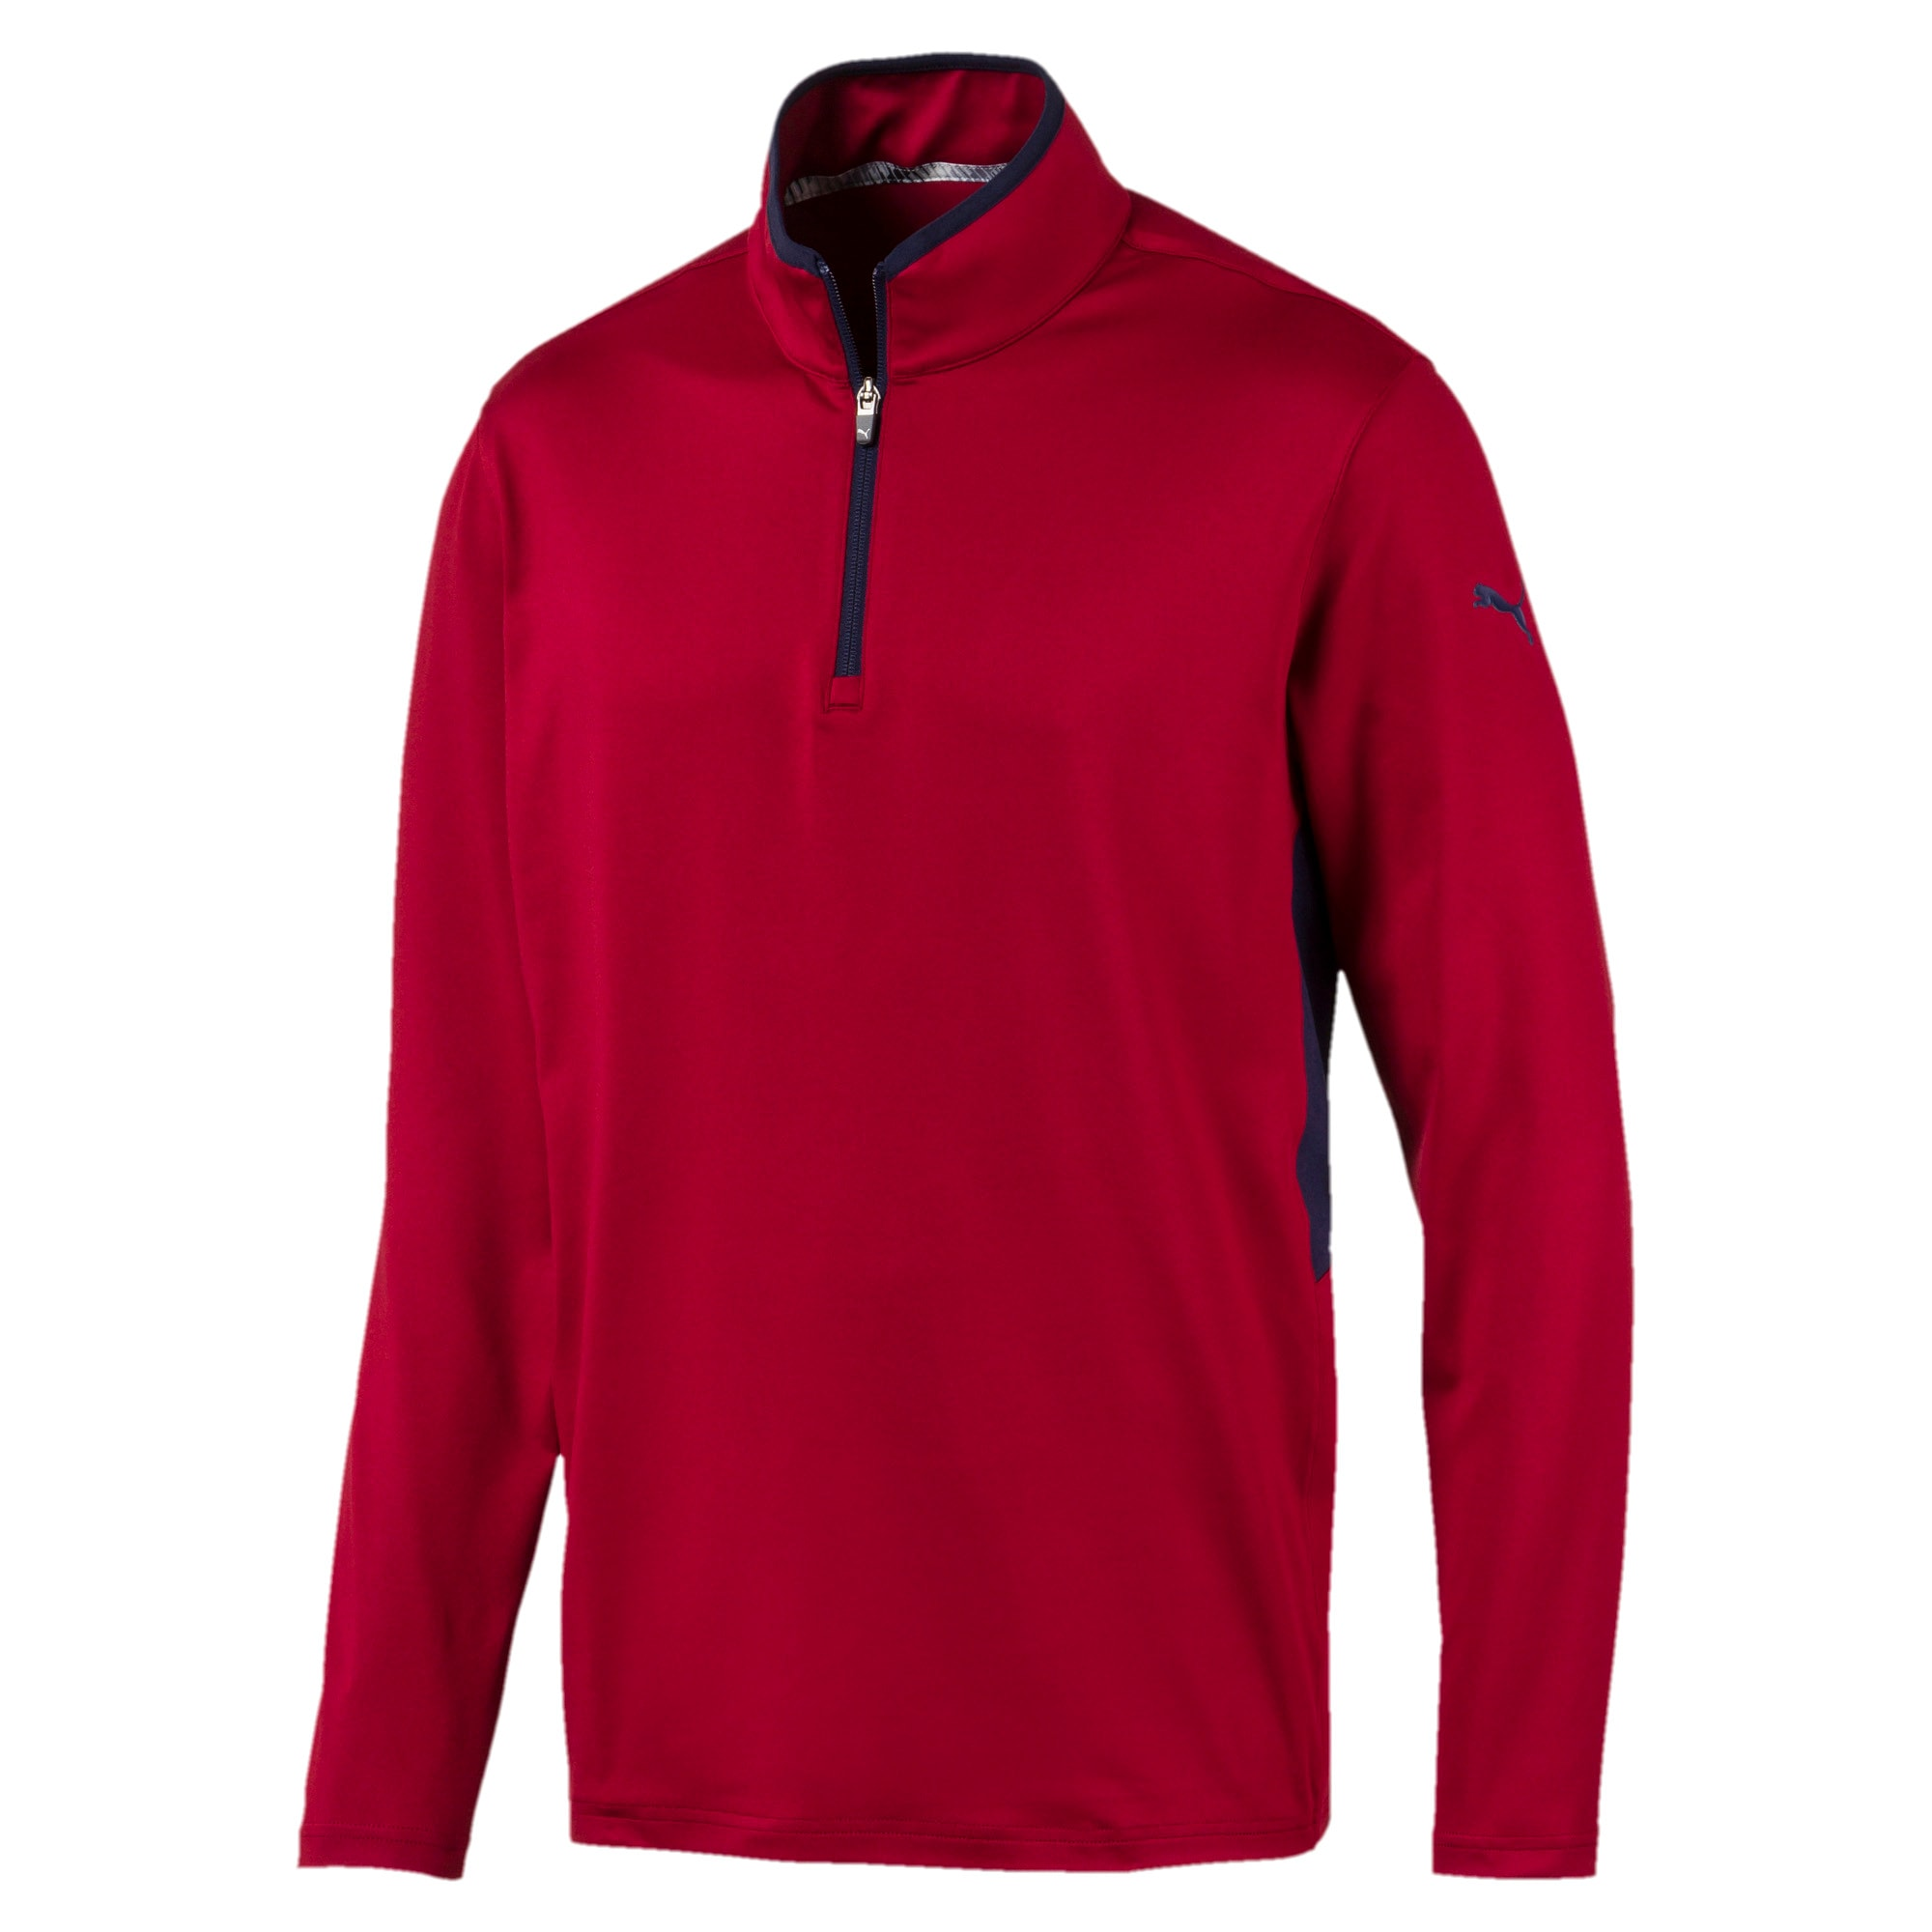 Thumbnail 1 of Rotation Men's 1/4 Zip Pullover, Rhubarb, medium